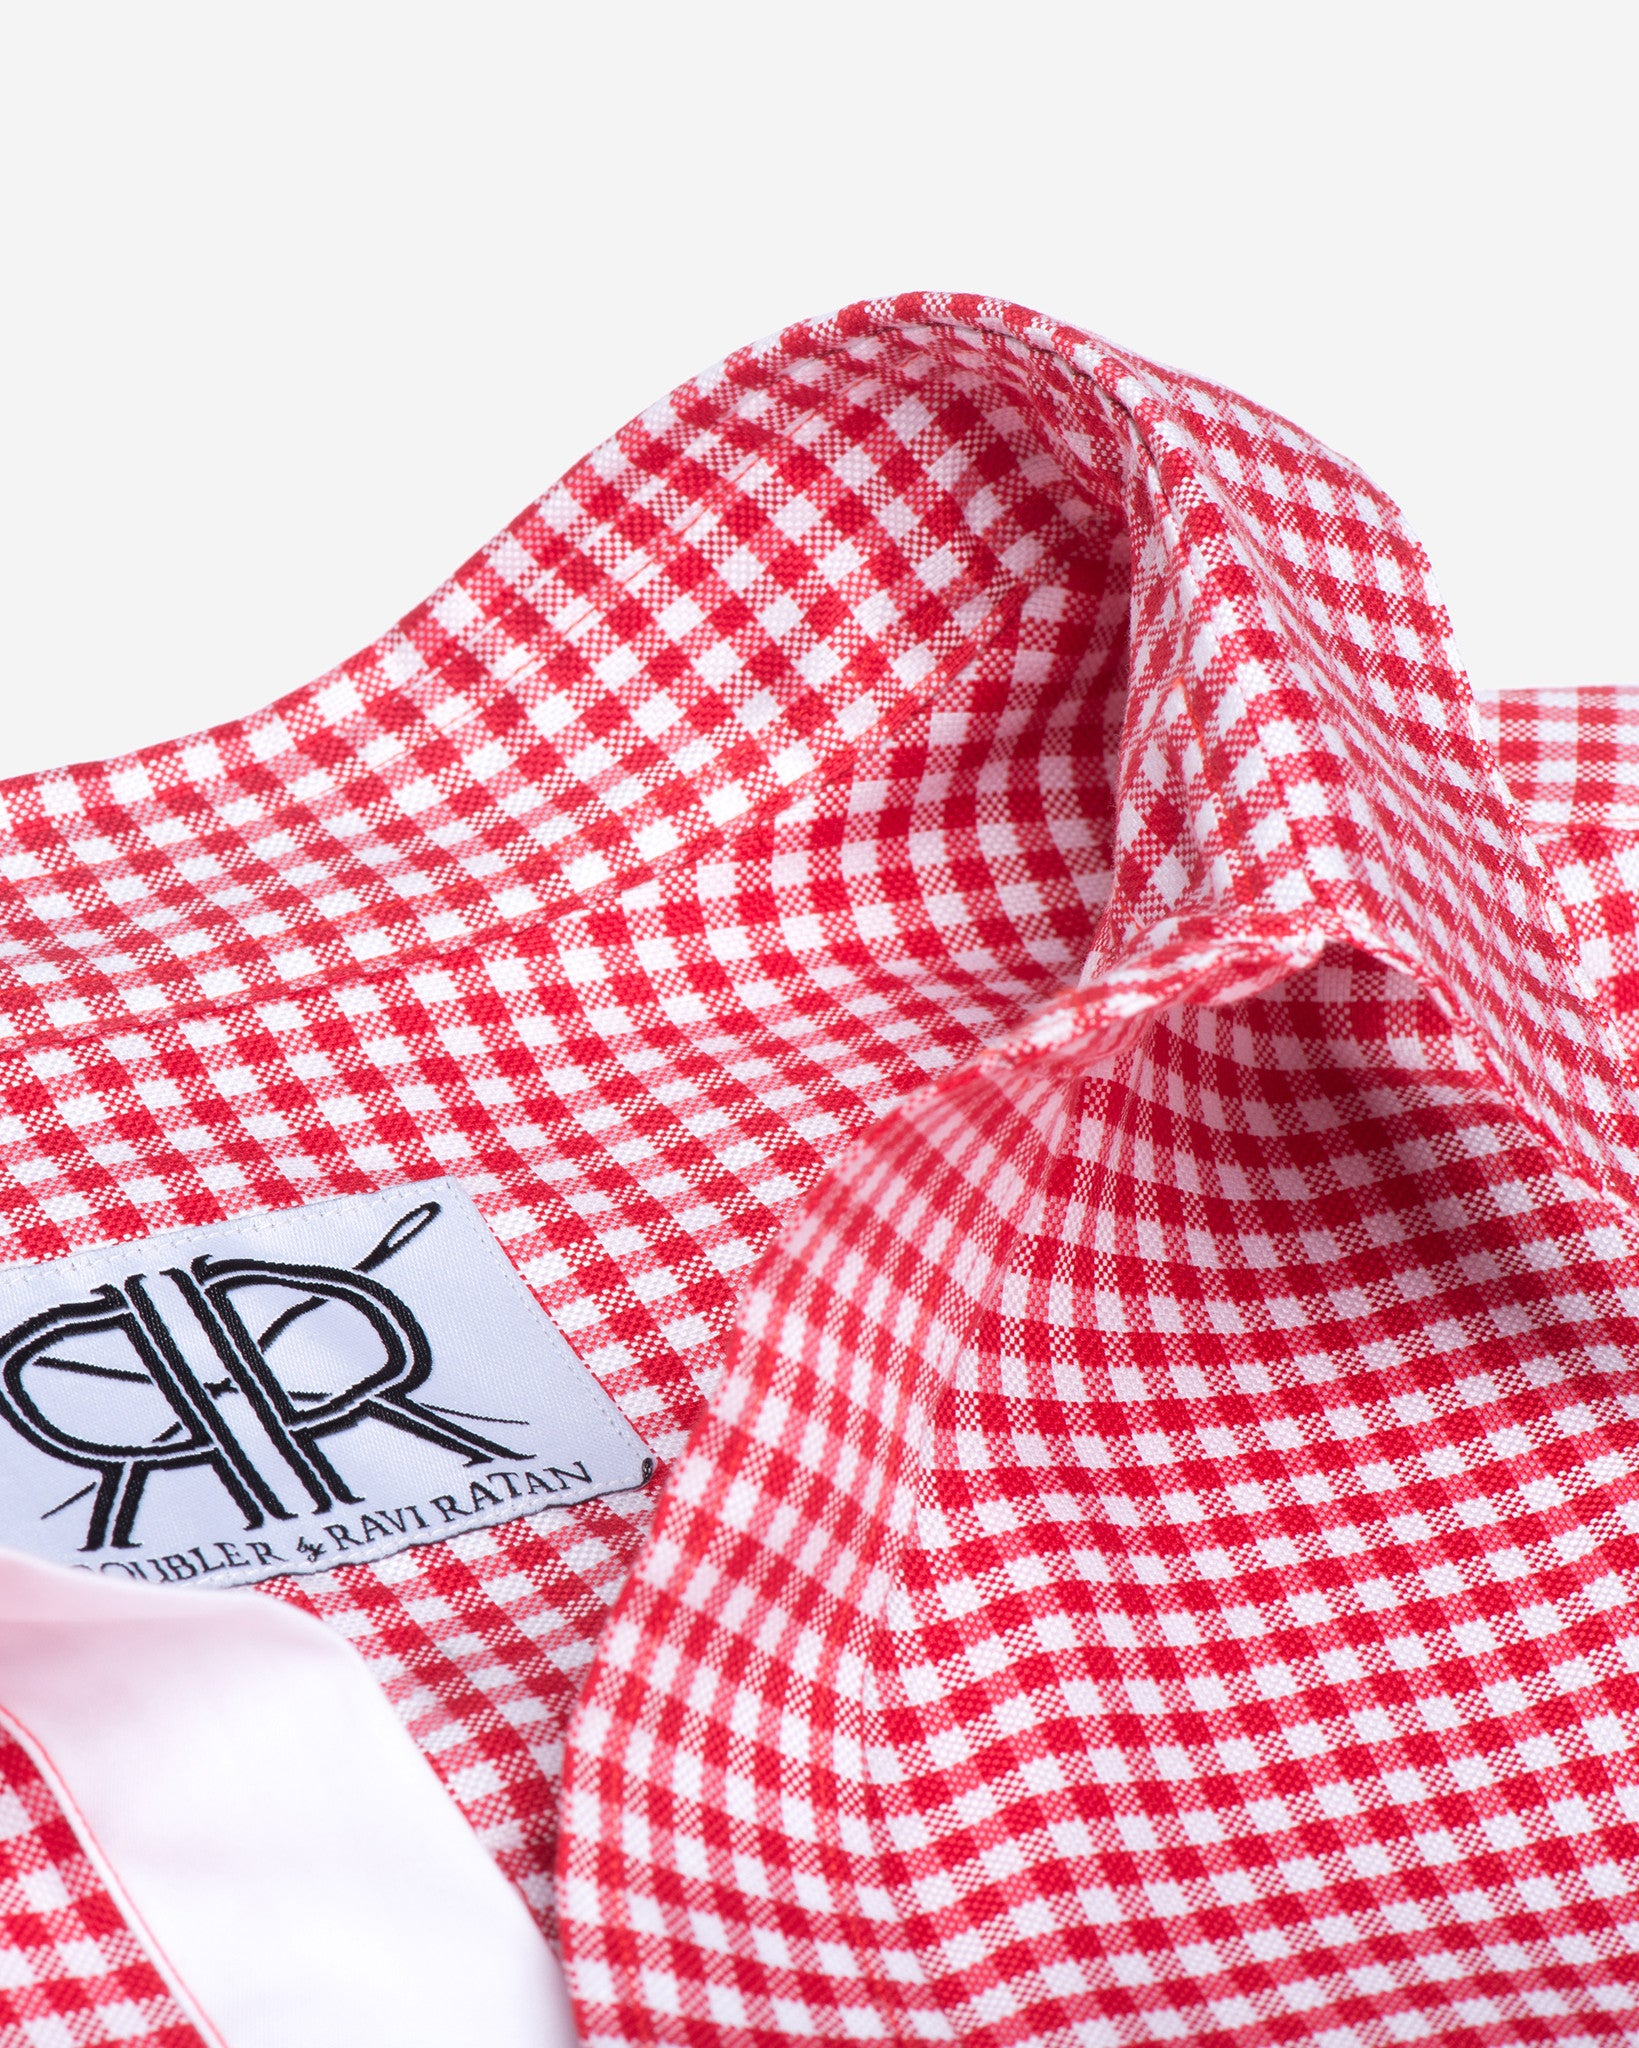 Tailored shirt red white gingham check women 39 s button up for Pink gingham shirt ladies